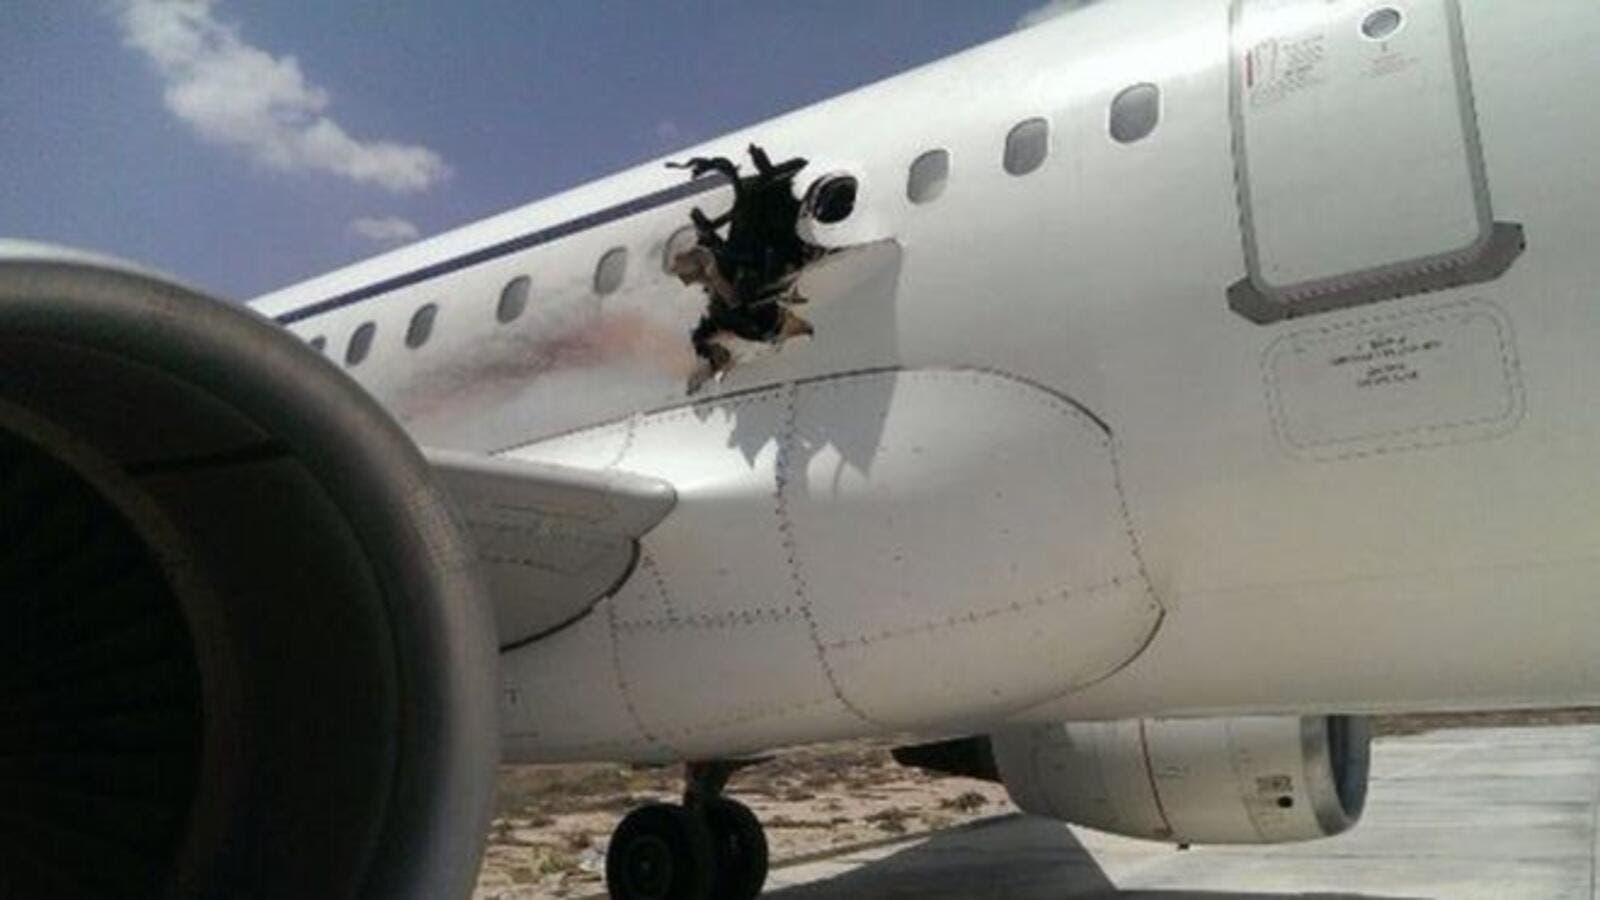 The Daallo Airlines Airbus 321 with 74 passengers on board made an emergency landing in the capital Mogadishu after the explosion shortly after take-off. (Social media)